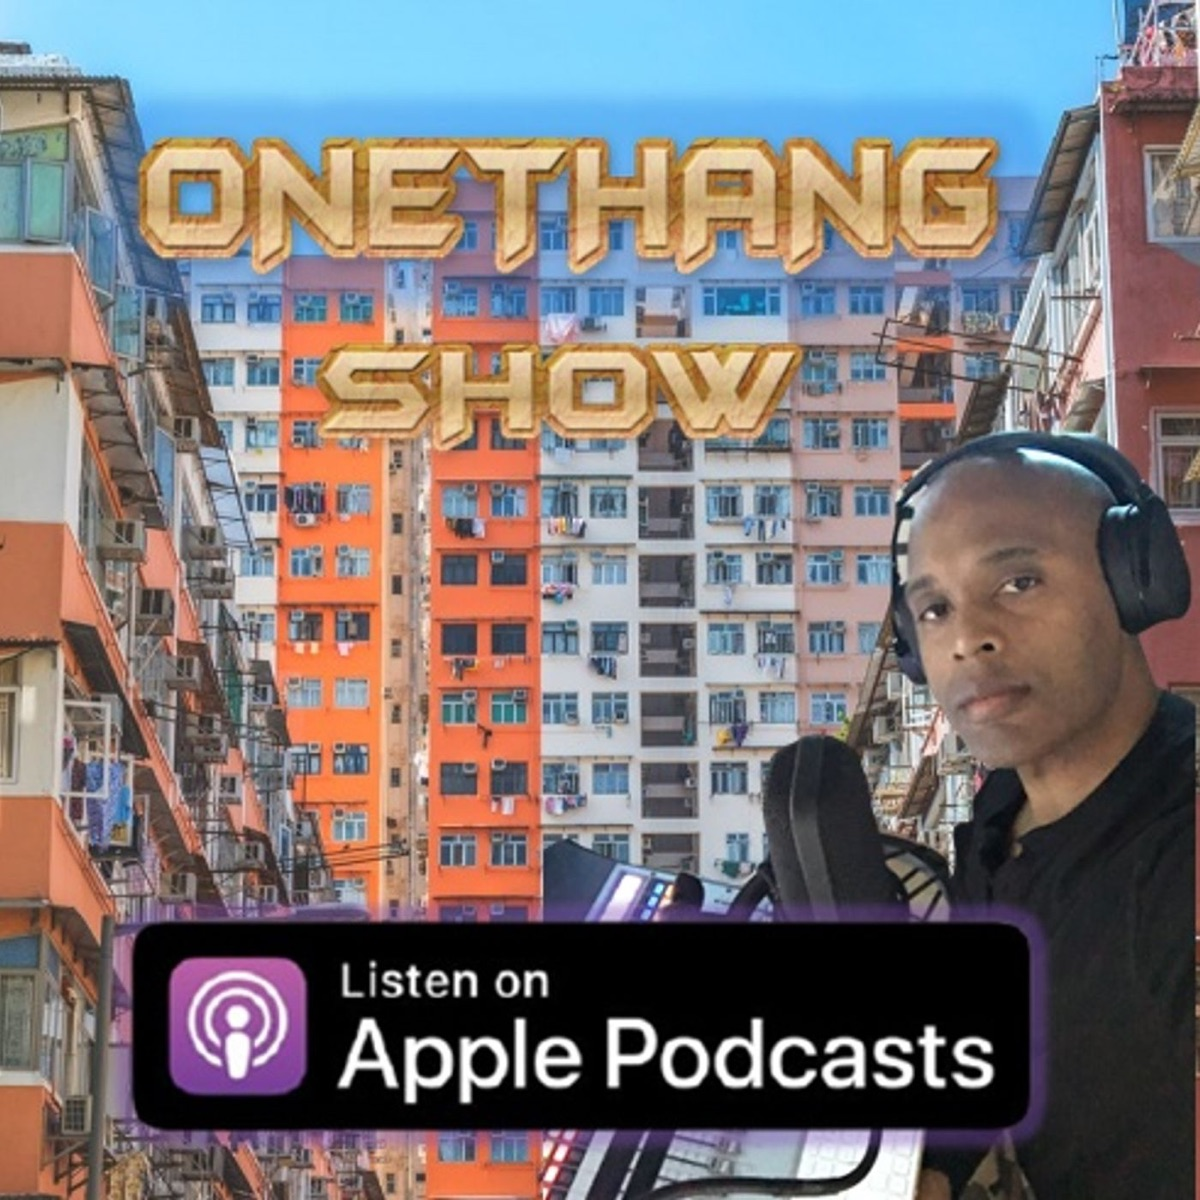 The ONETHANG Show